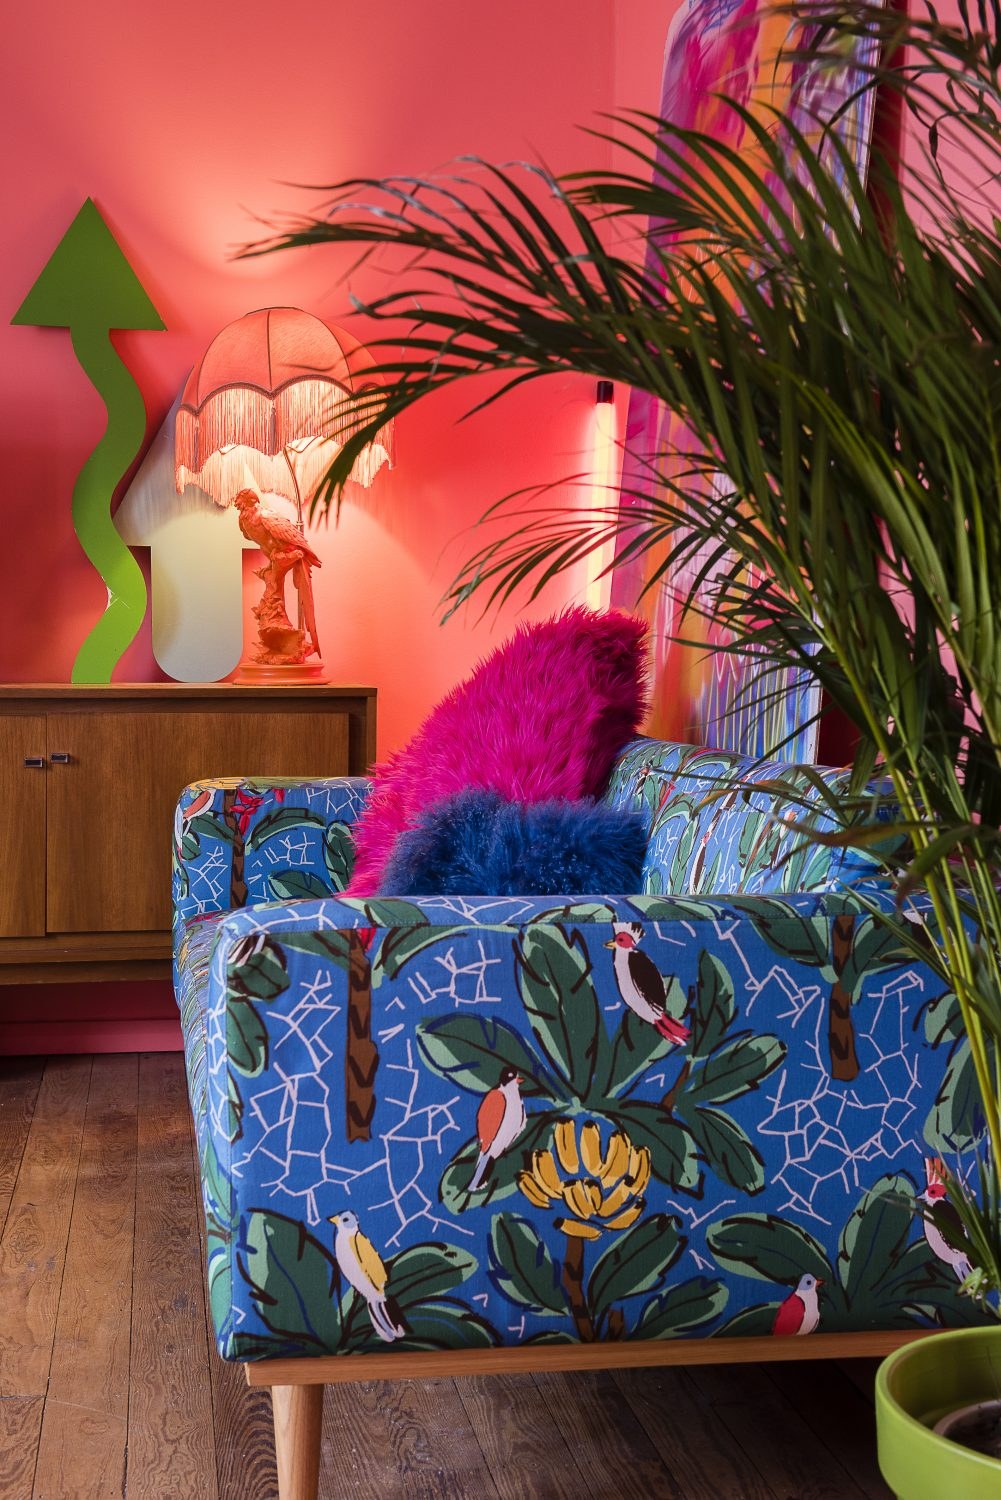 Tropical birds and foliage feature on the upholstery of another sofa, alongside a neon light and a large spray-painted canvas which rests against one wall